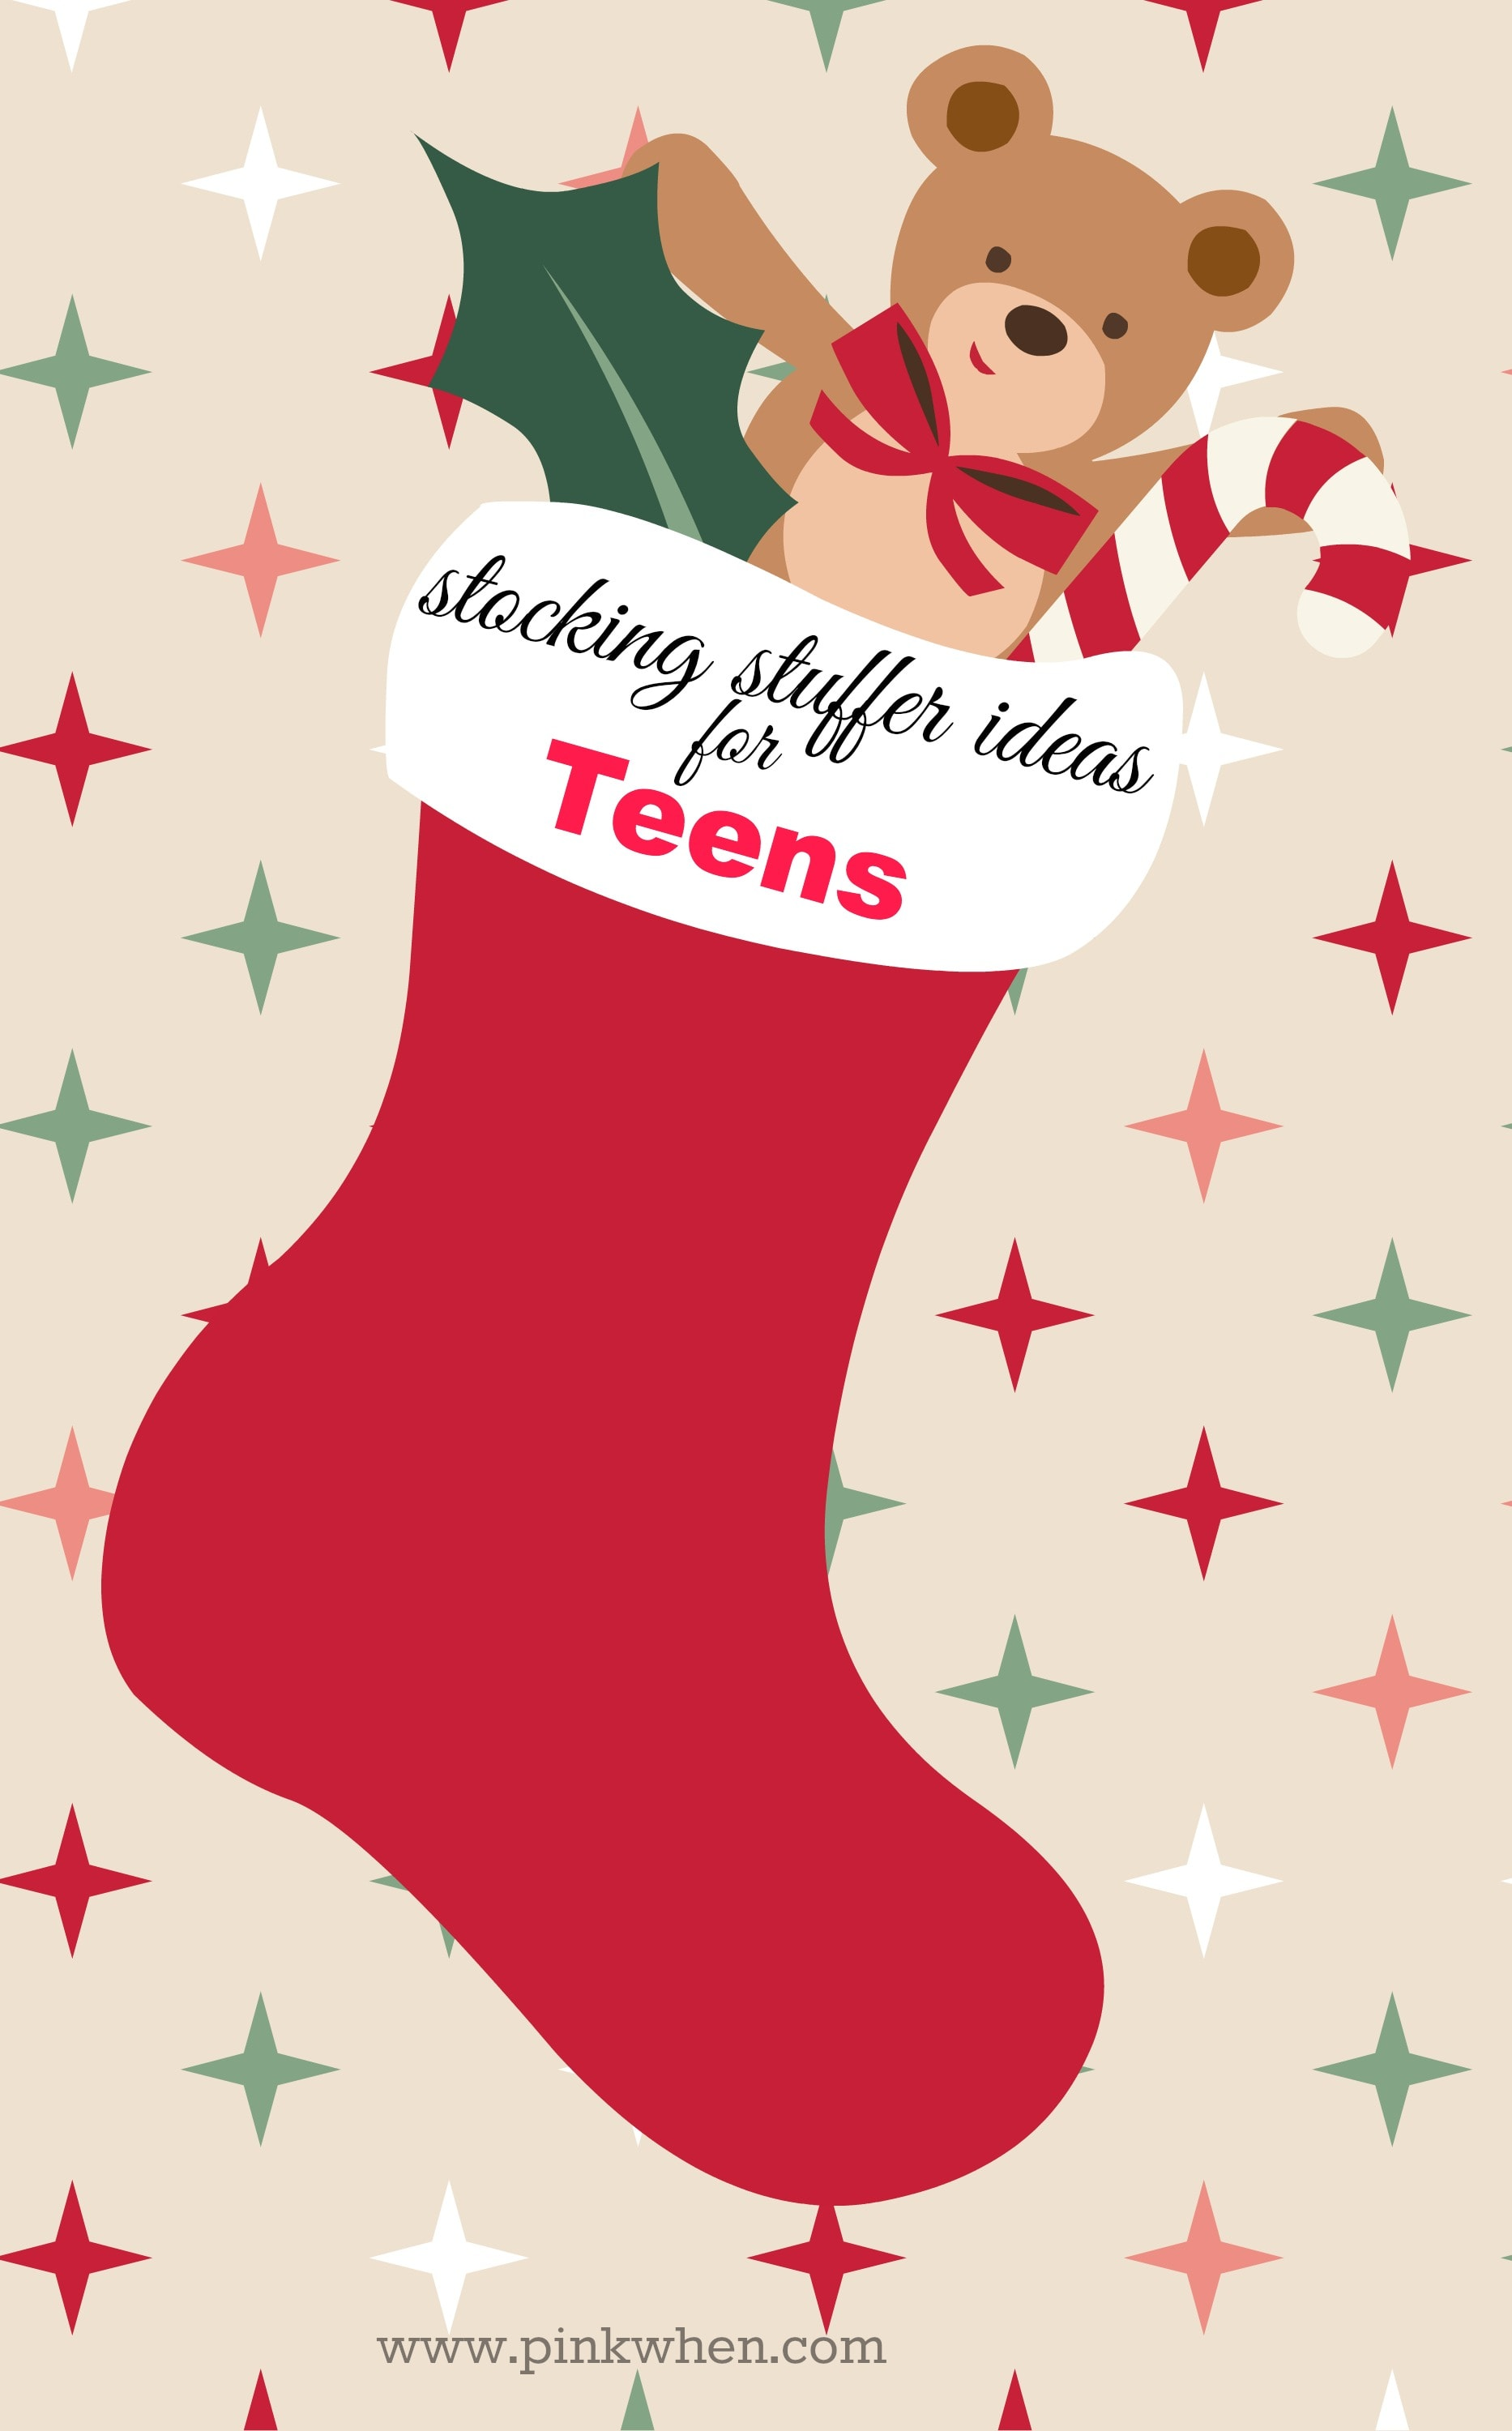 Stocking Stuffer Ideas for Teens - Boys and Girls